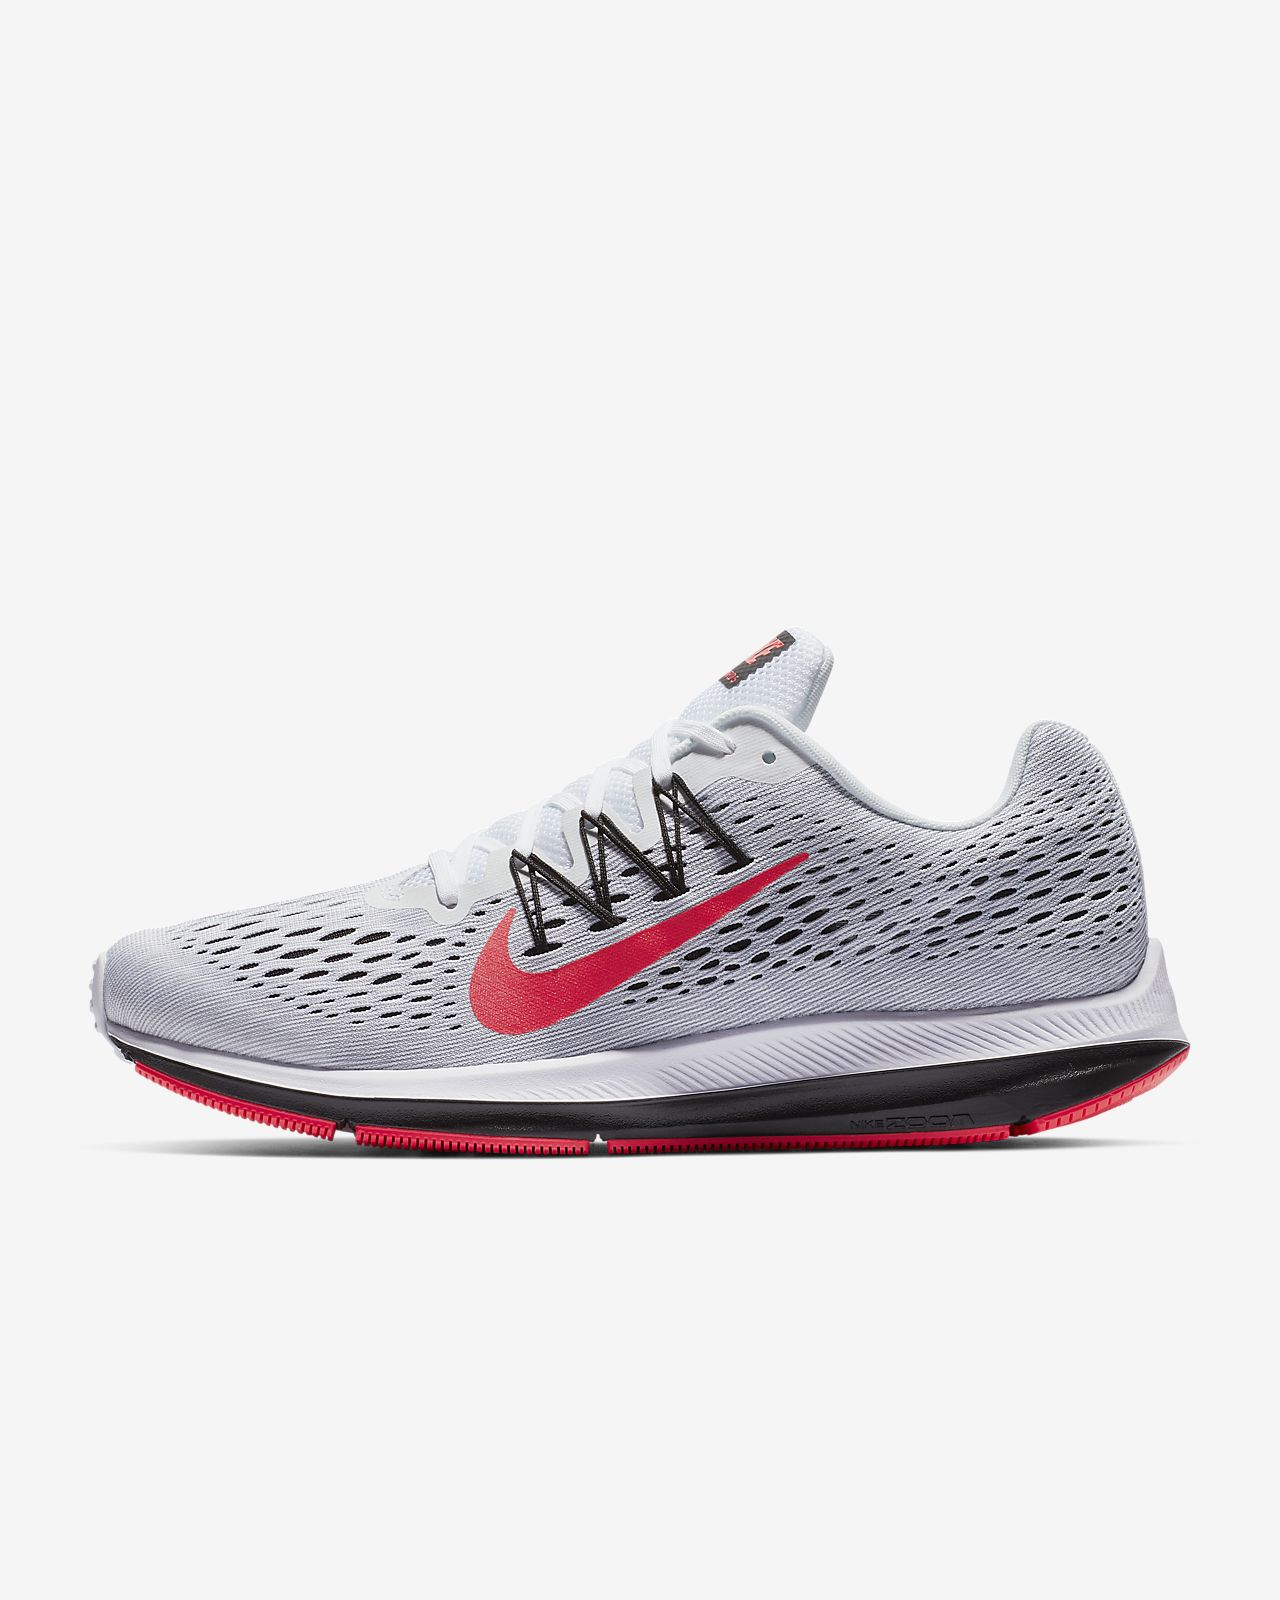 8fc0f8ce97a1 Nike Air Zoom Winflo 5 Men s Running Shoe. Nike.com